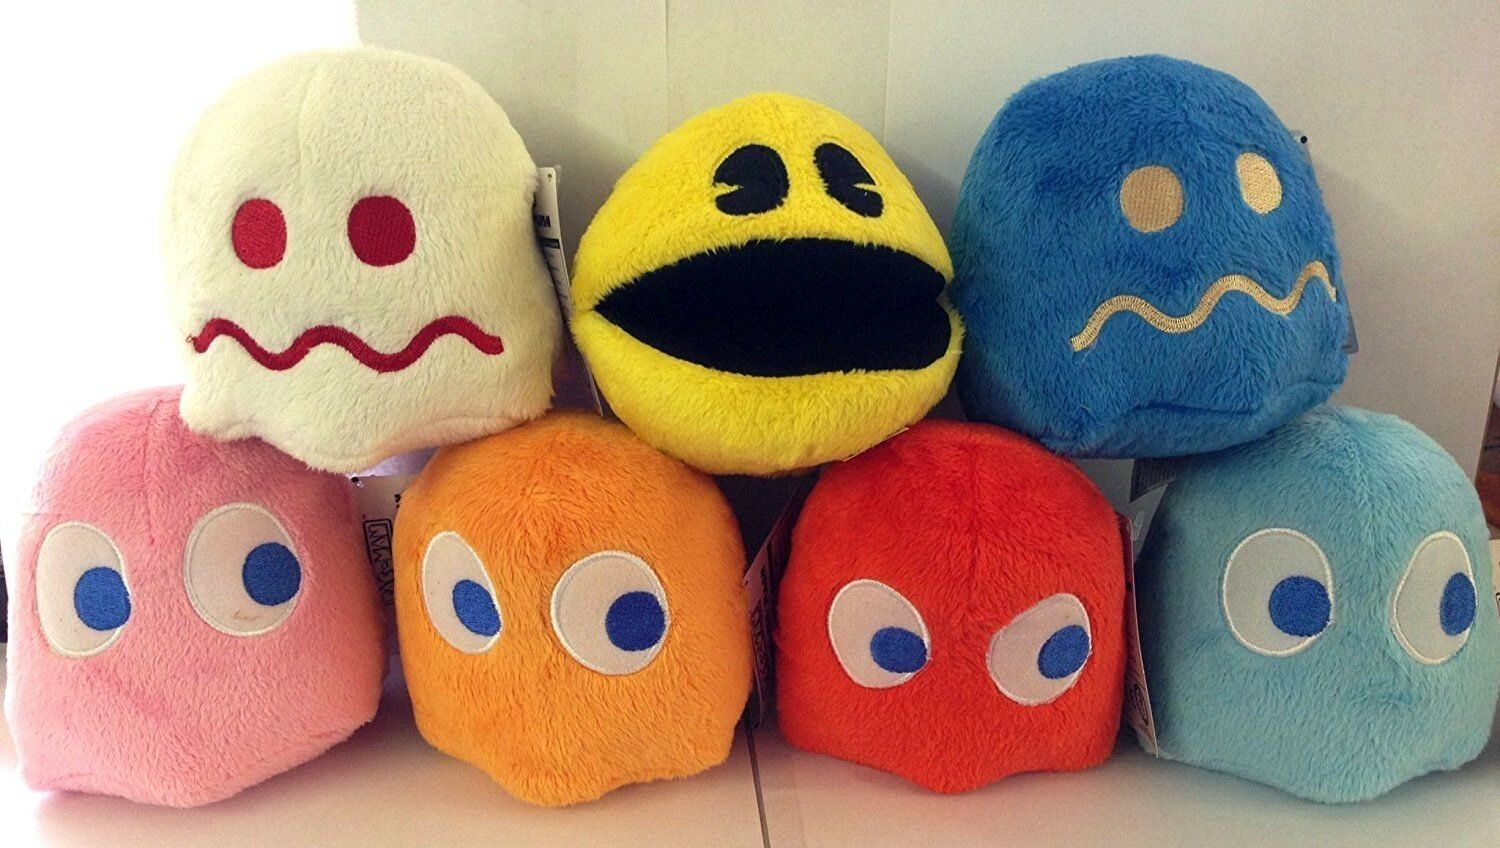 Set of 7 toys toys toys Pac-man plush 4'' each.Collectible.Licensed.Pac man.NWT.Christmas 0d2b99